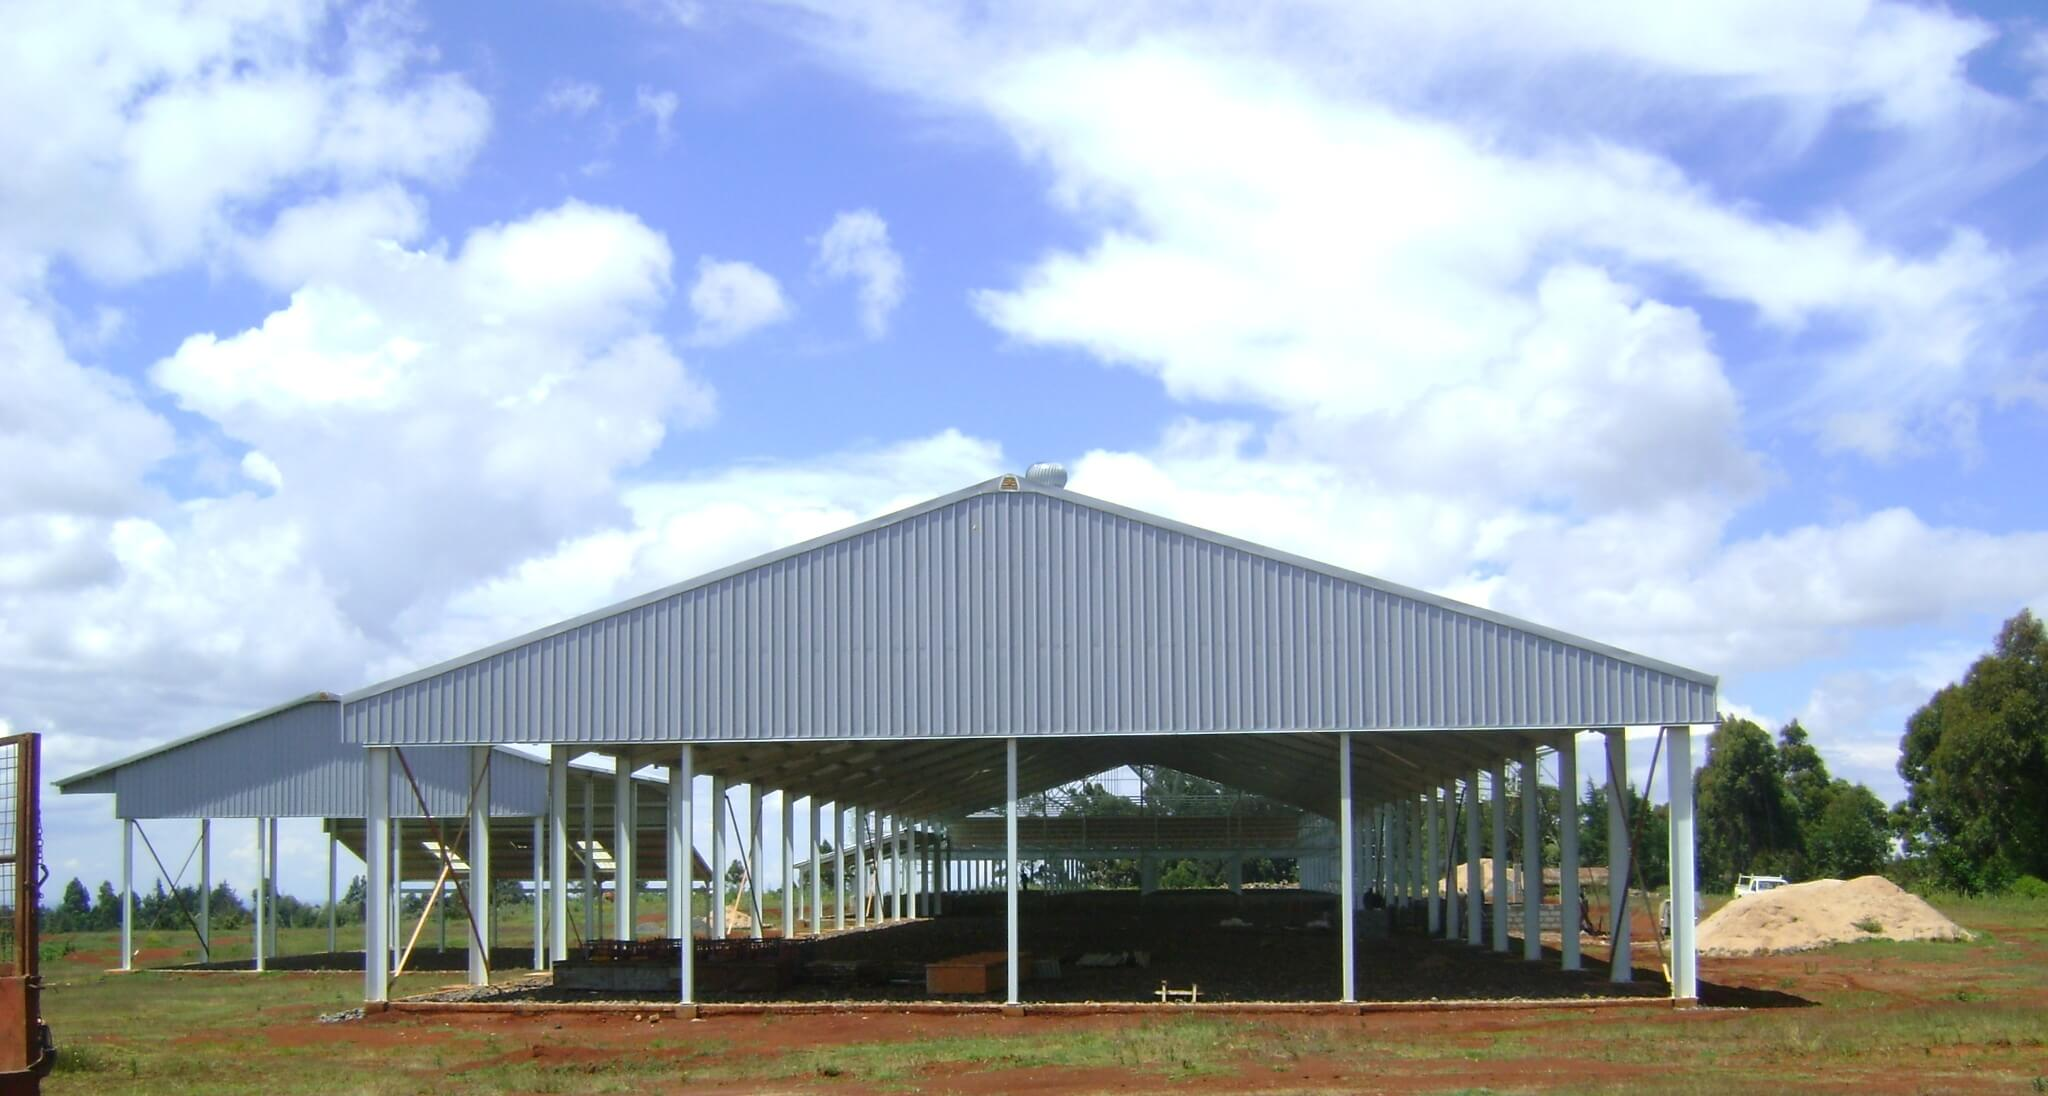 SSS4416-2016-Factory for Tea, Sisibo,Eldoret,Kenya